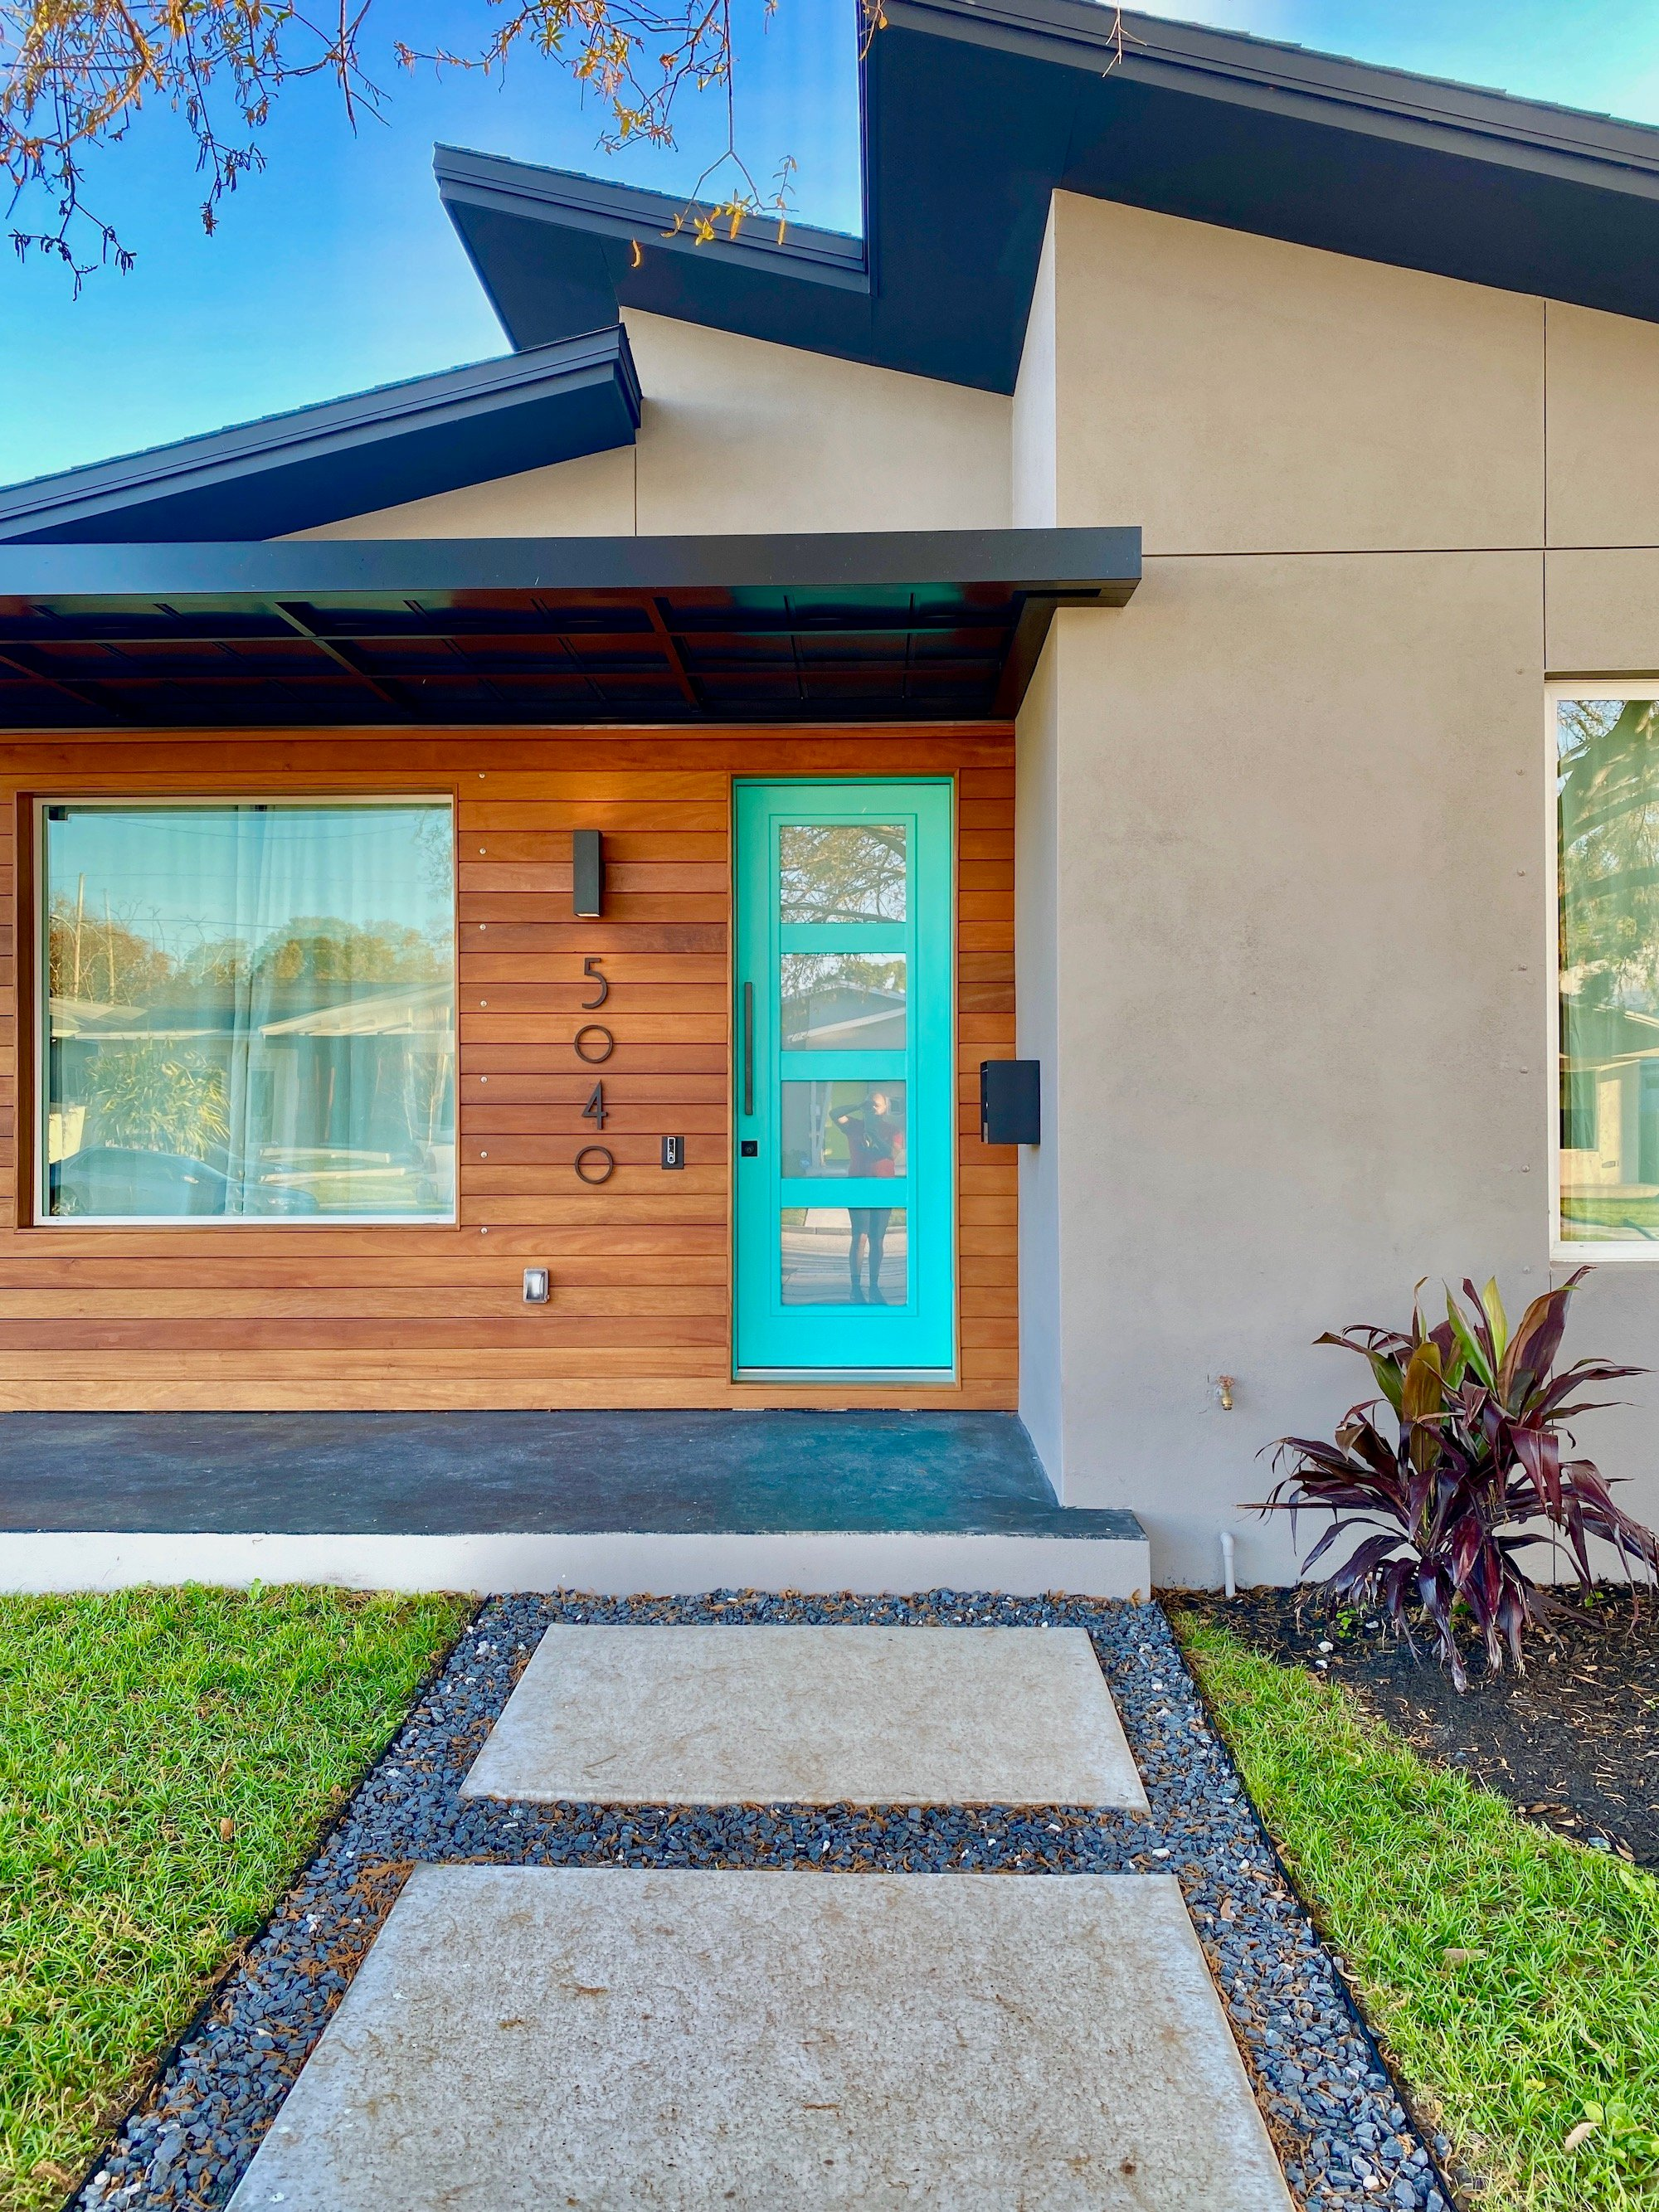 Therefore, A custom Modern Sidewalk and a stained concrete front porch welcome guests. Also, the front door is a tiffany blue color.